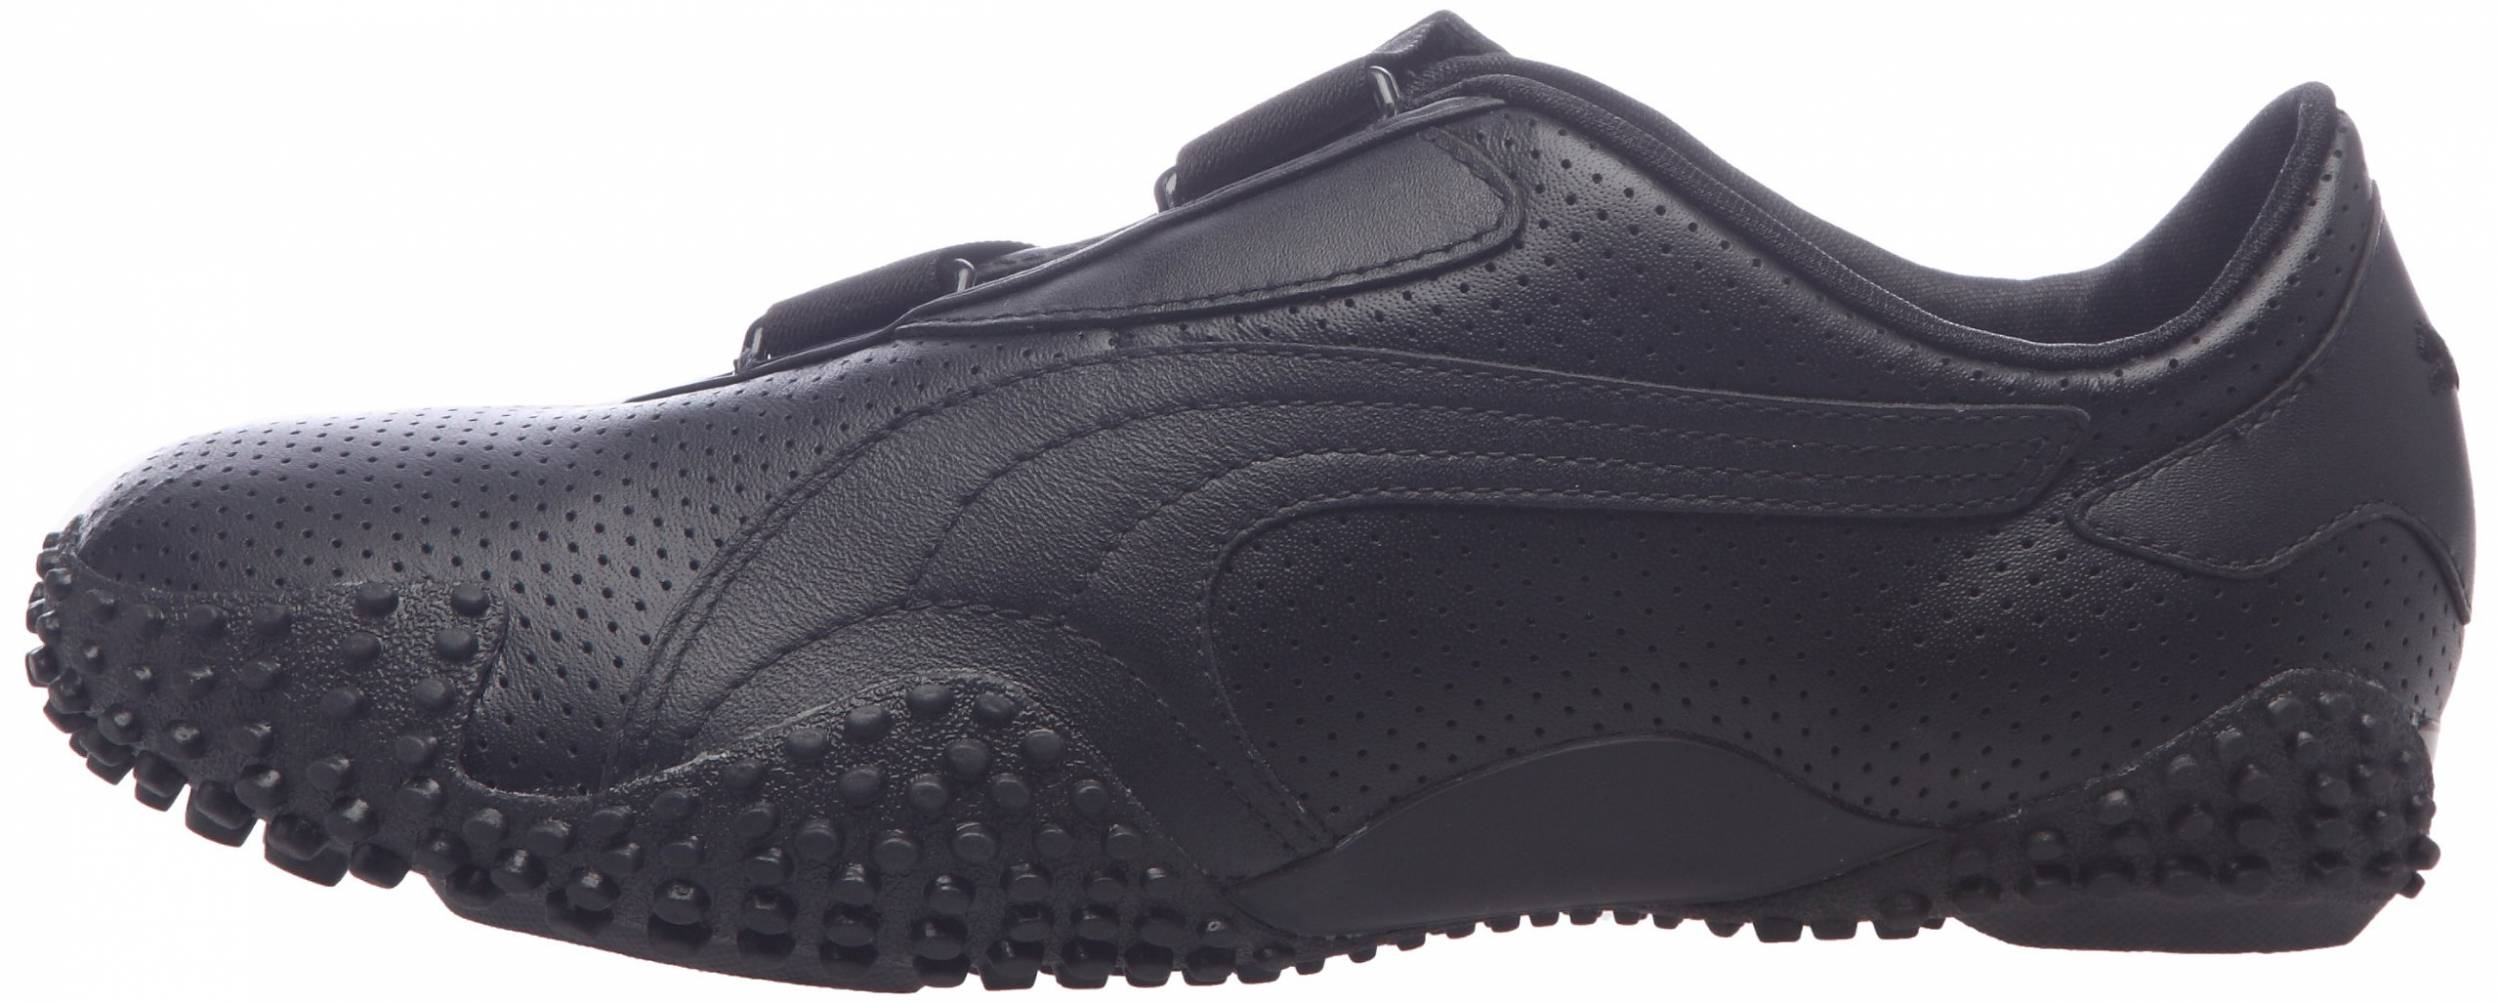 Puma Mostro Perf Leather sneakers in black white (only $63 ...